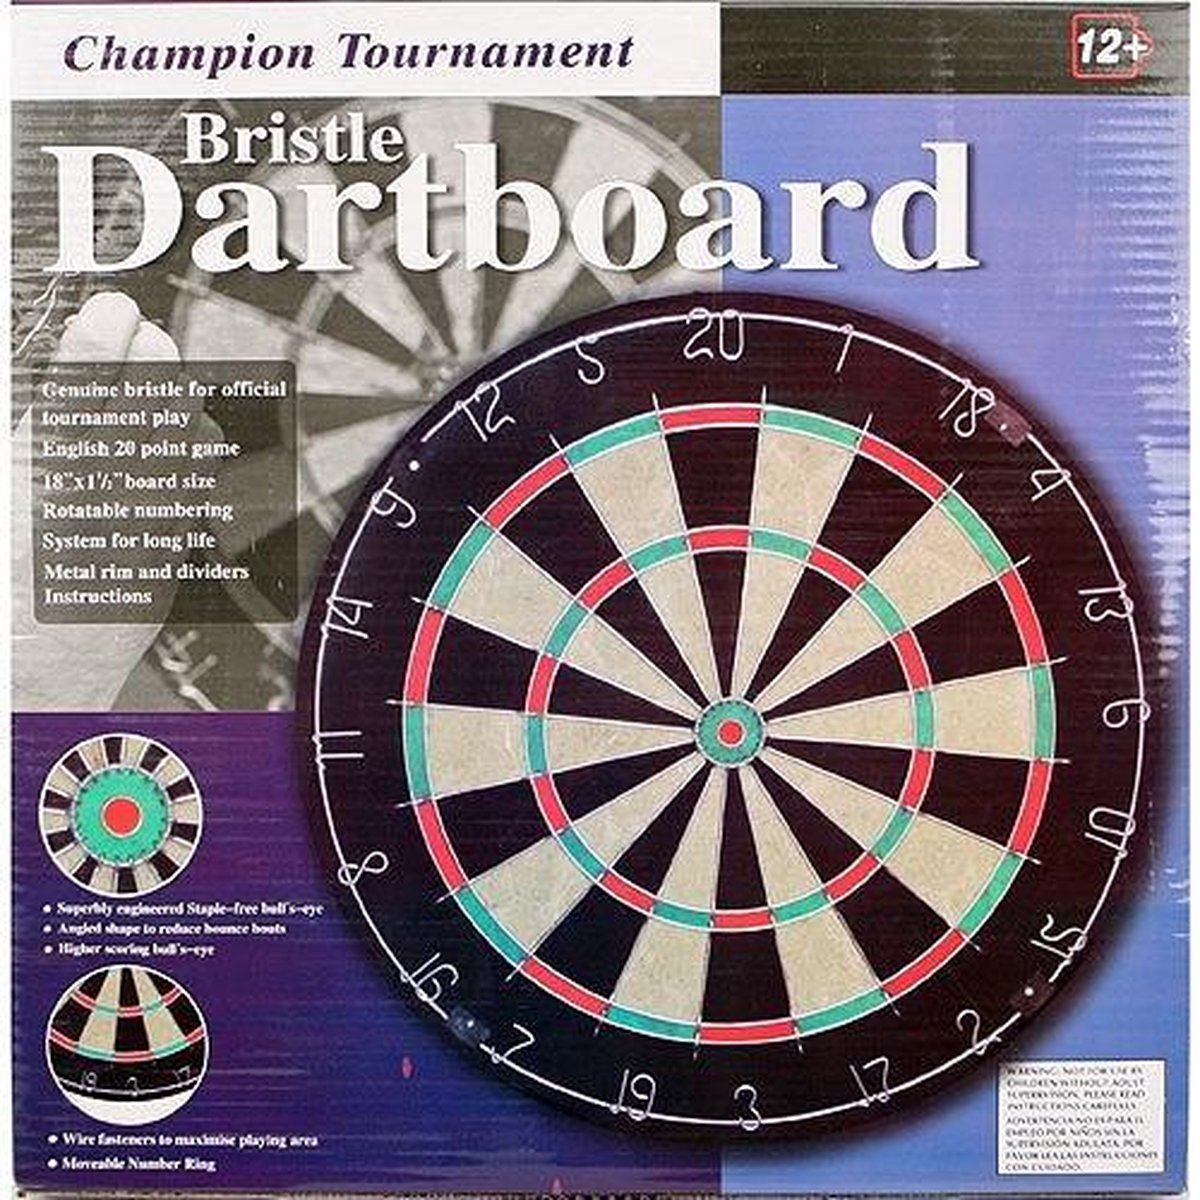 Bristle Champion Tournament - Dartbord